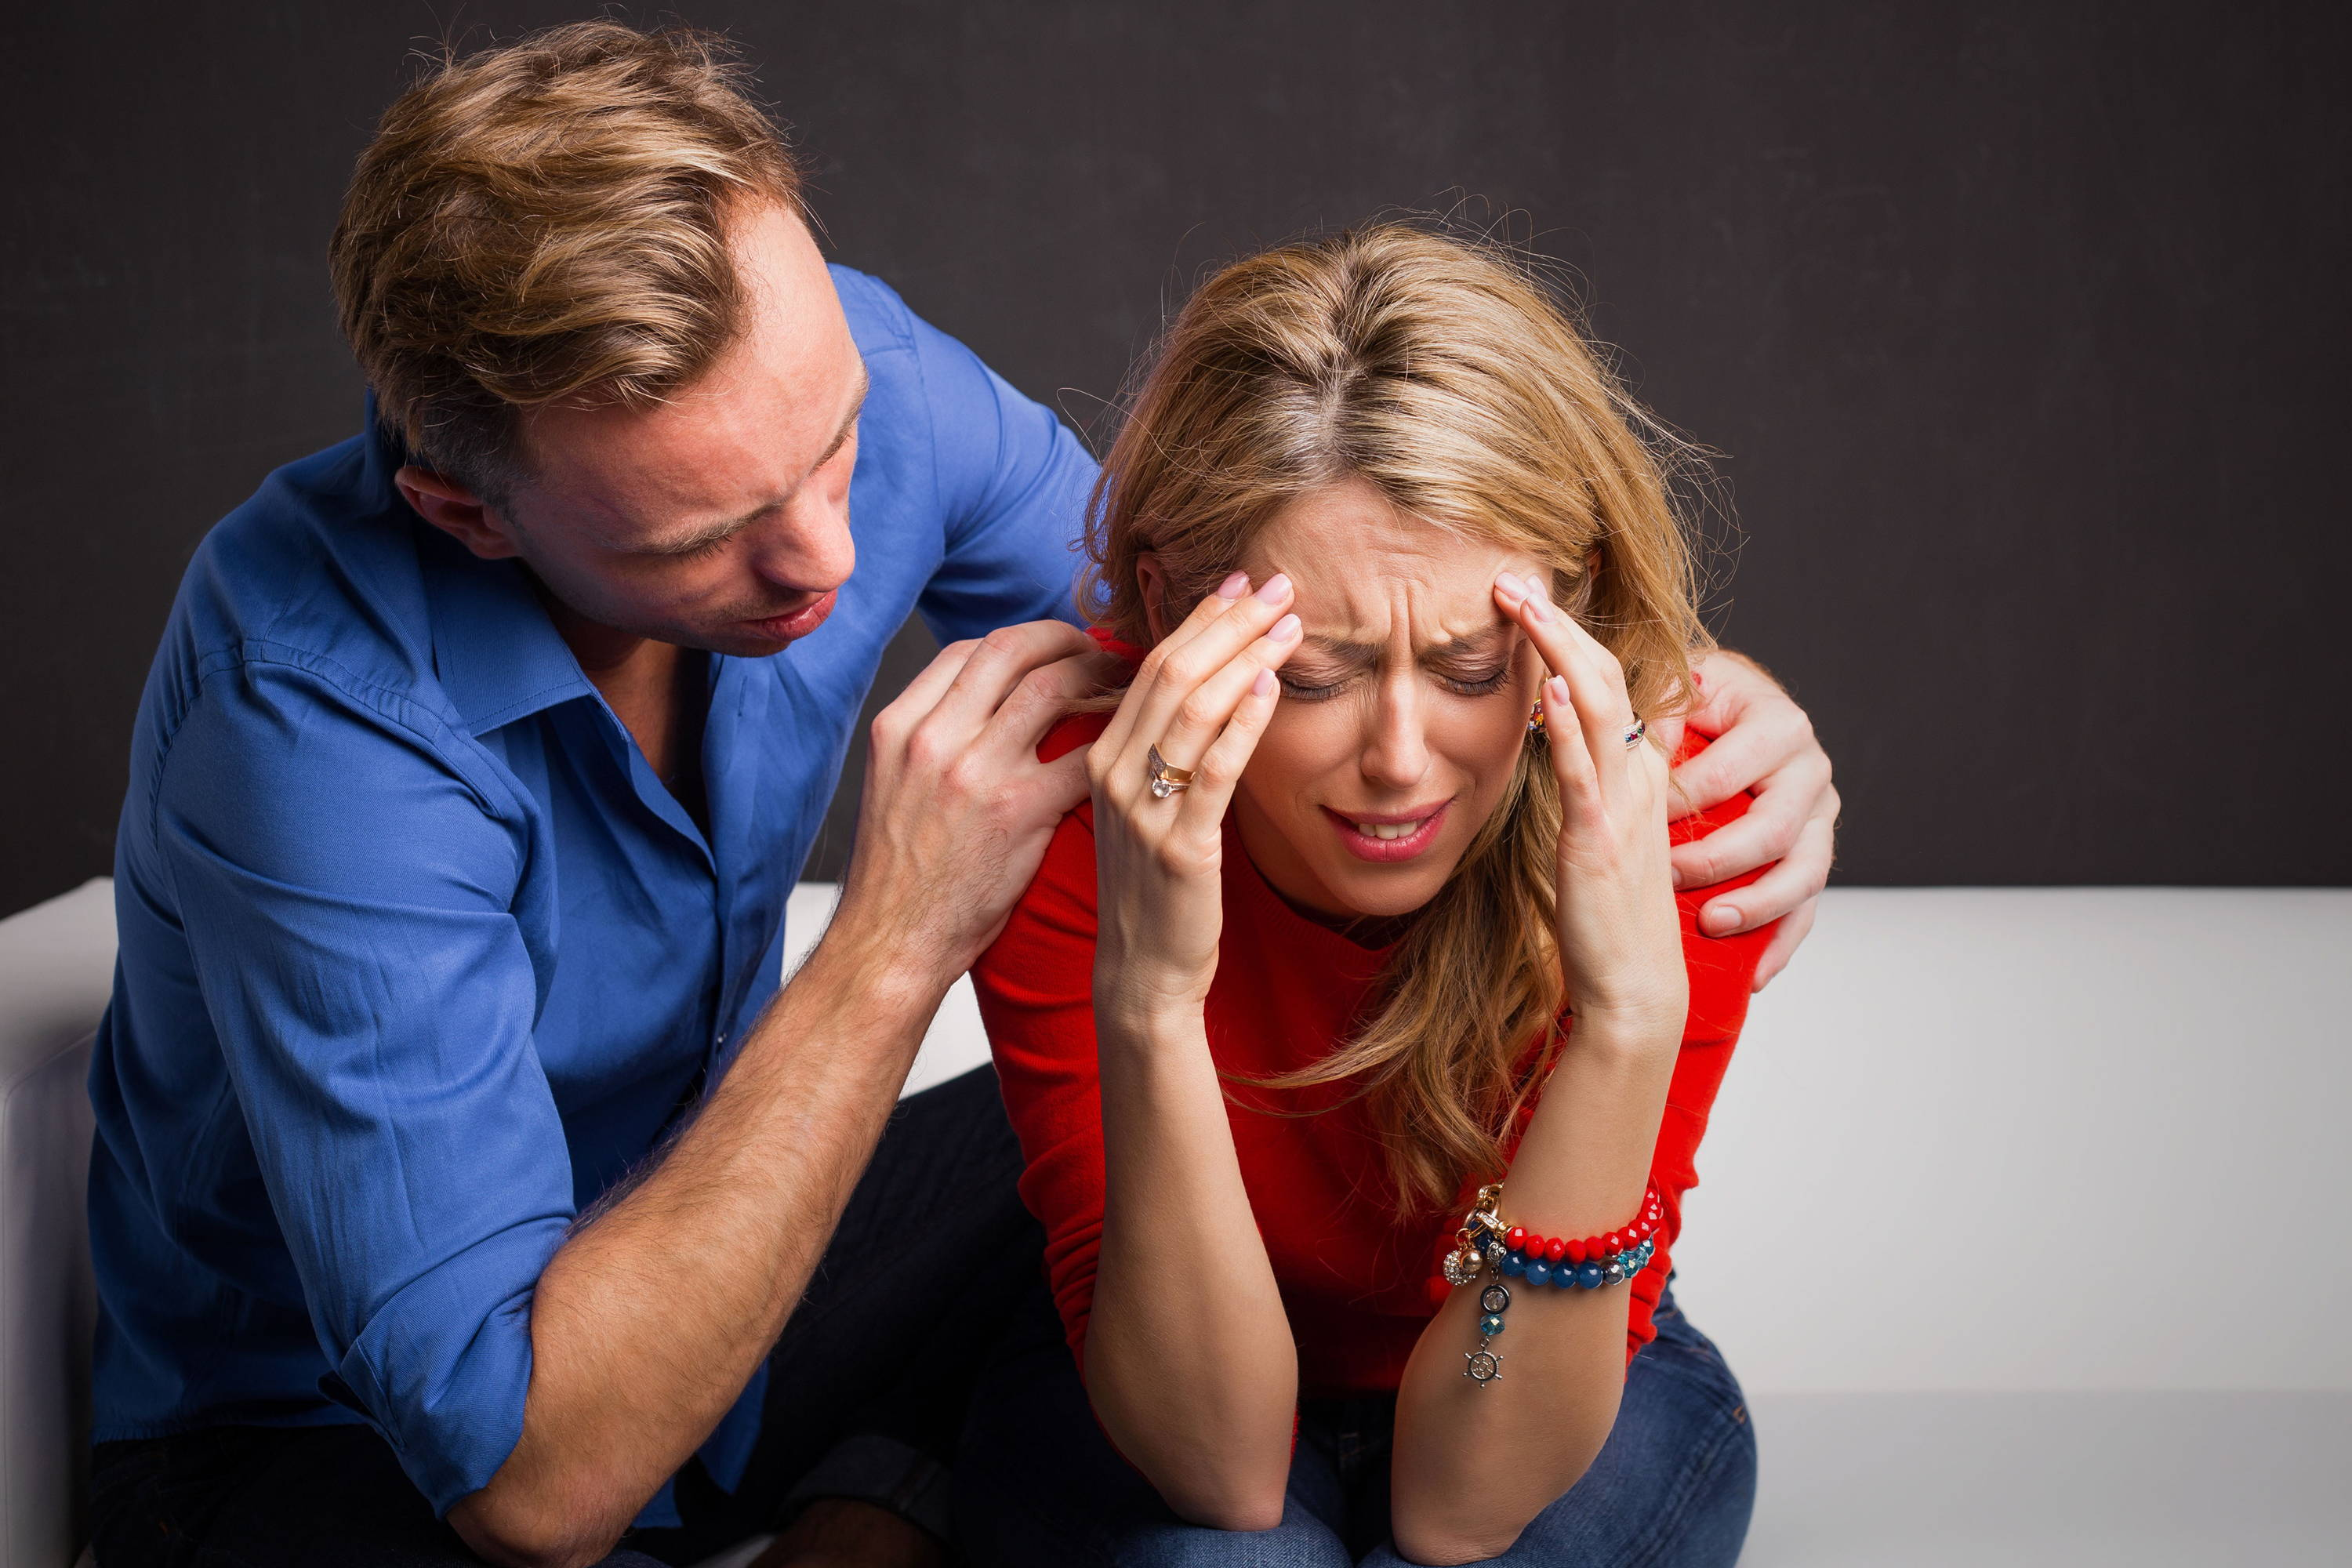 How to talk to your wife about her mood swings during